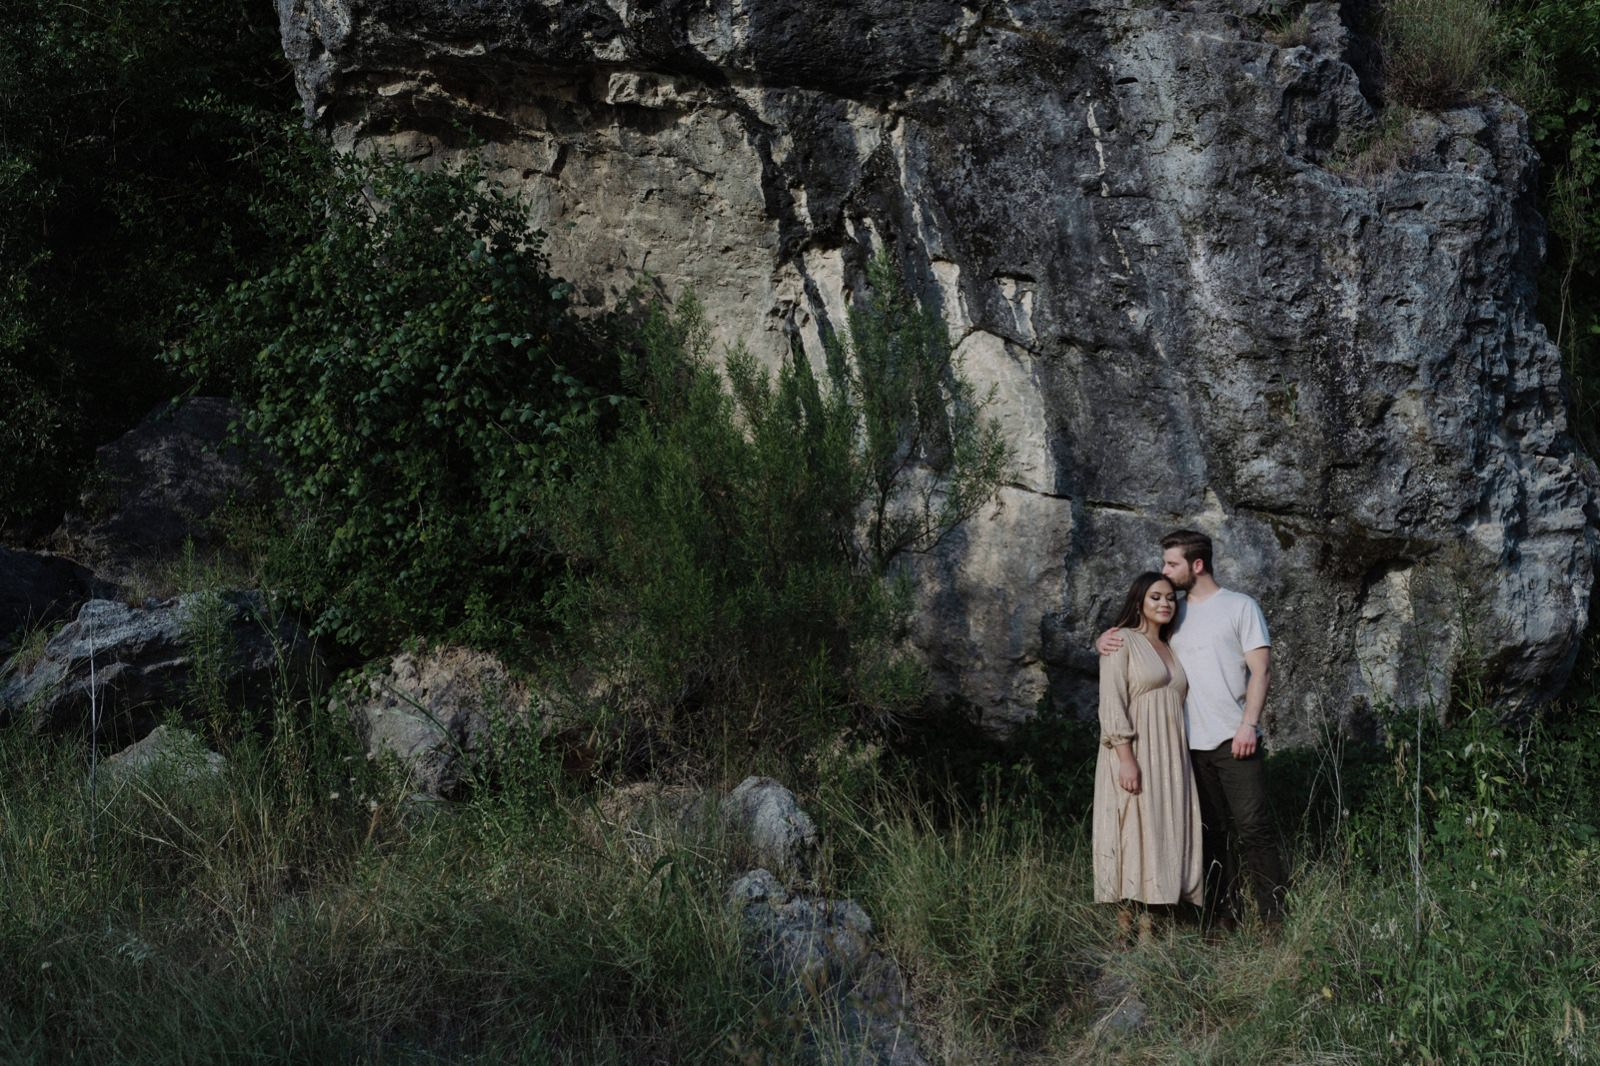 Engaged couple embracing outside a canyon in the Texas hill country during their photography session